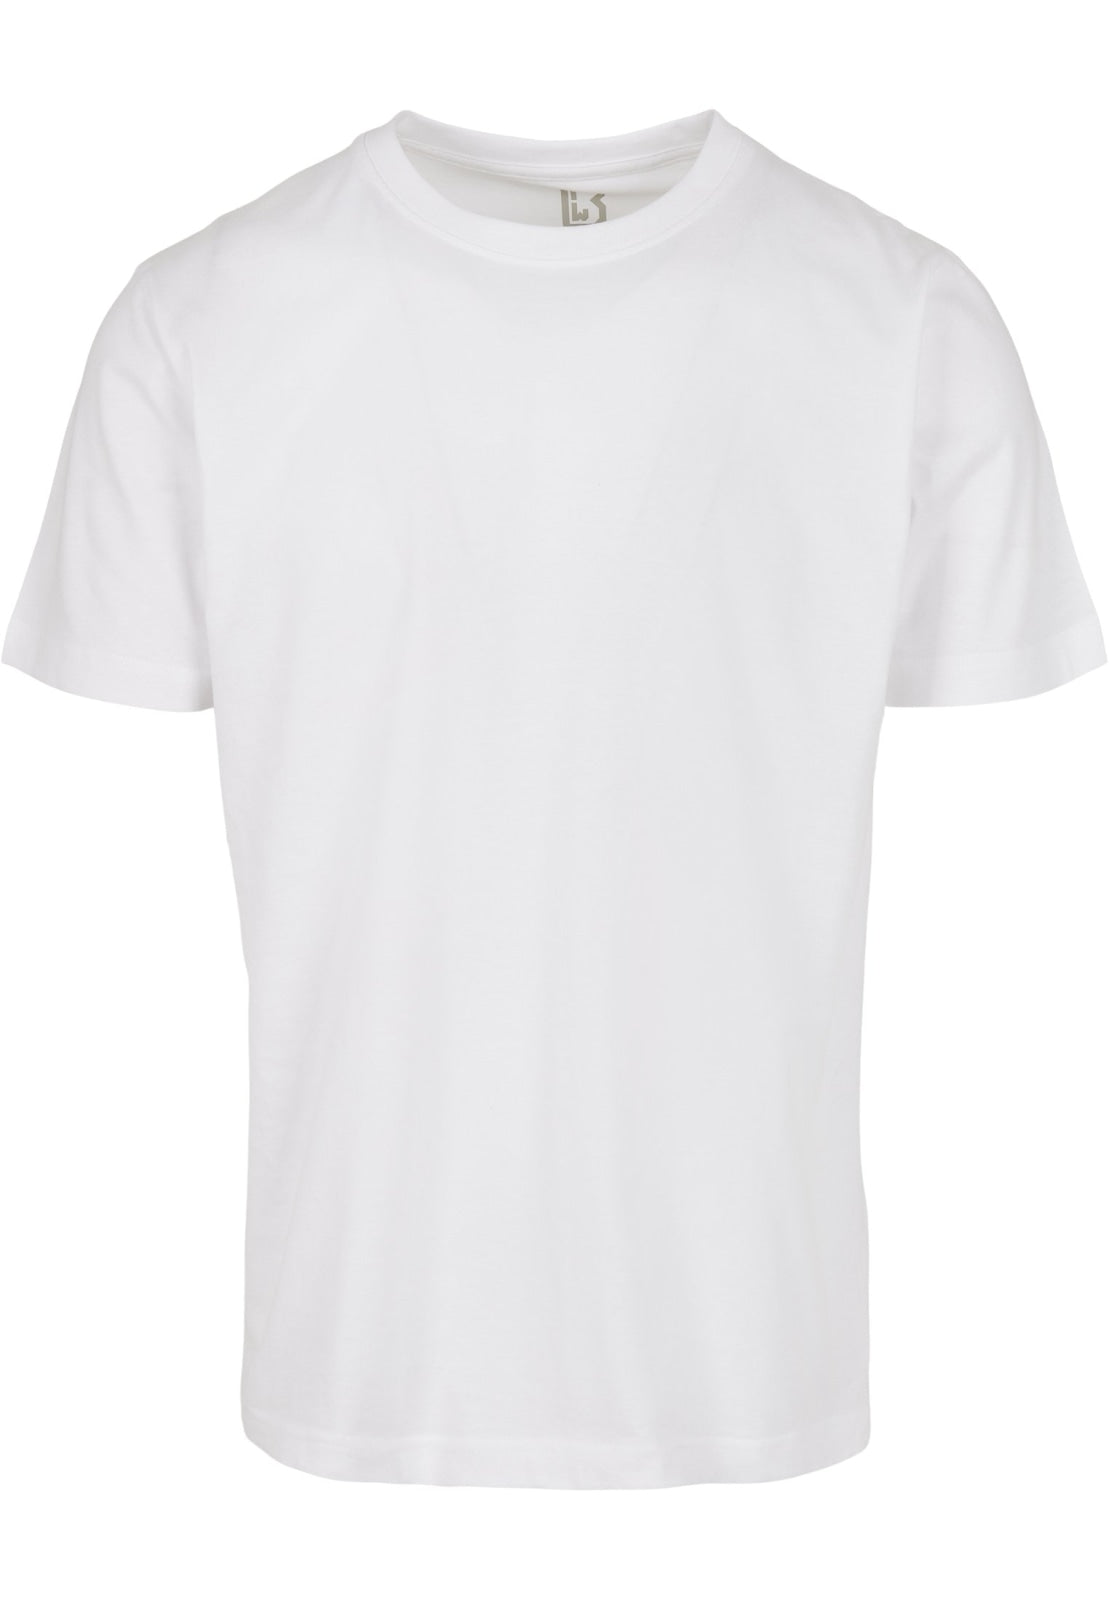 Brandit T-shirt (8 Colors | s - 7xl) White / s T-shirt Brandit